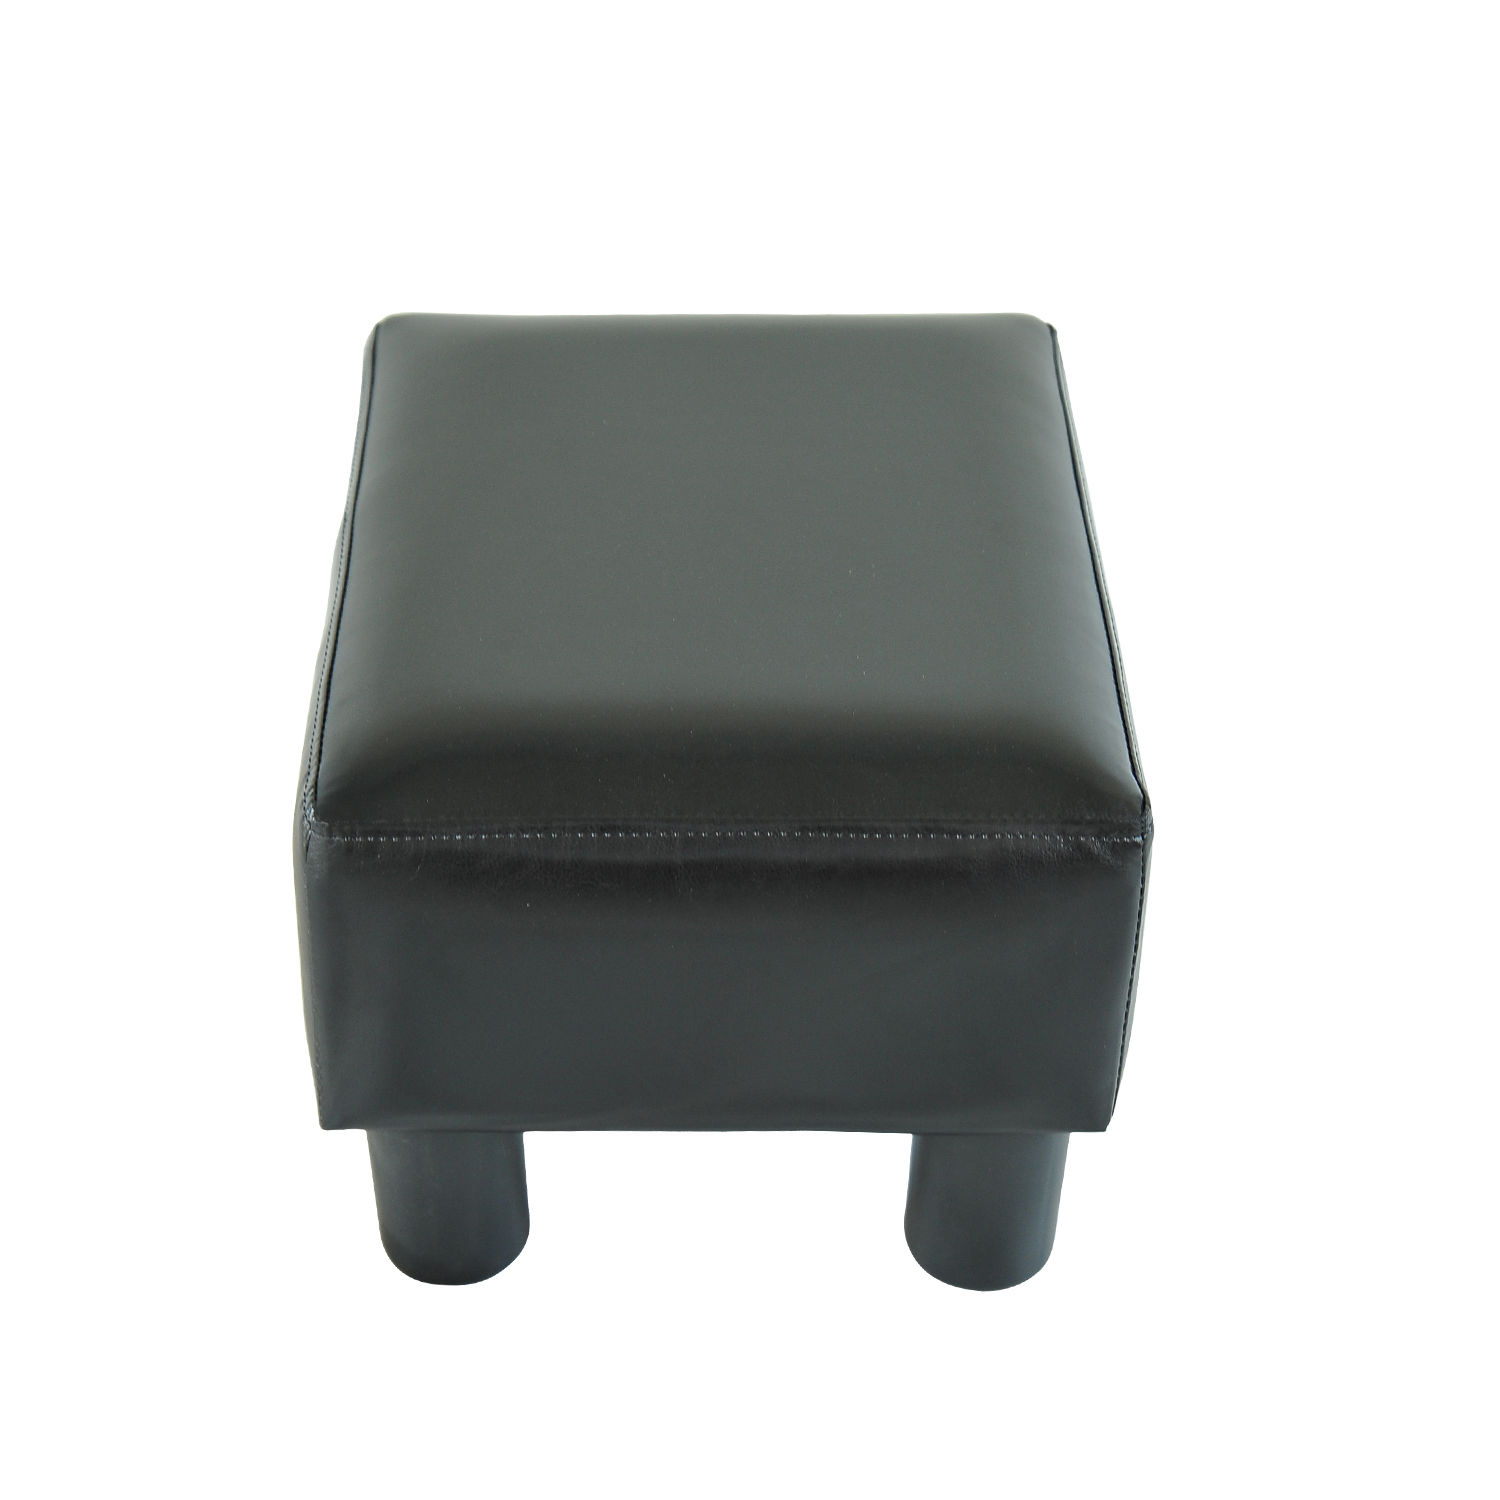 chair stool with footrest deck chairs sainsburys modern faux leather ottoman foot rest small